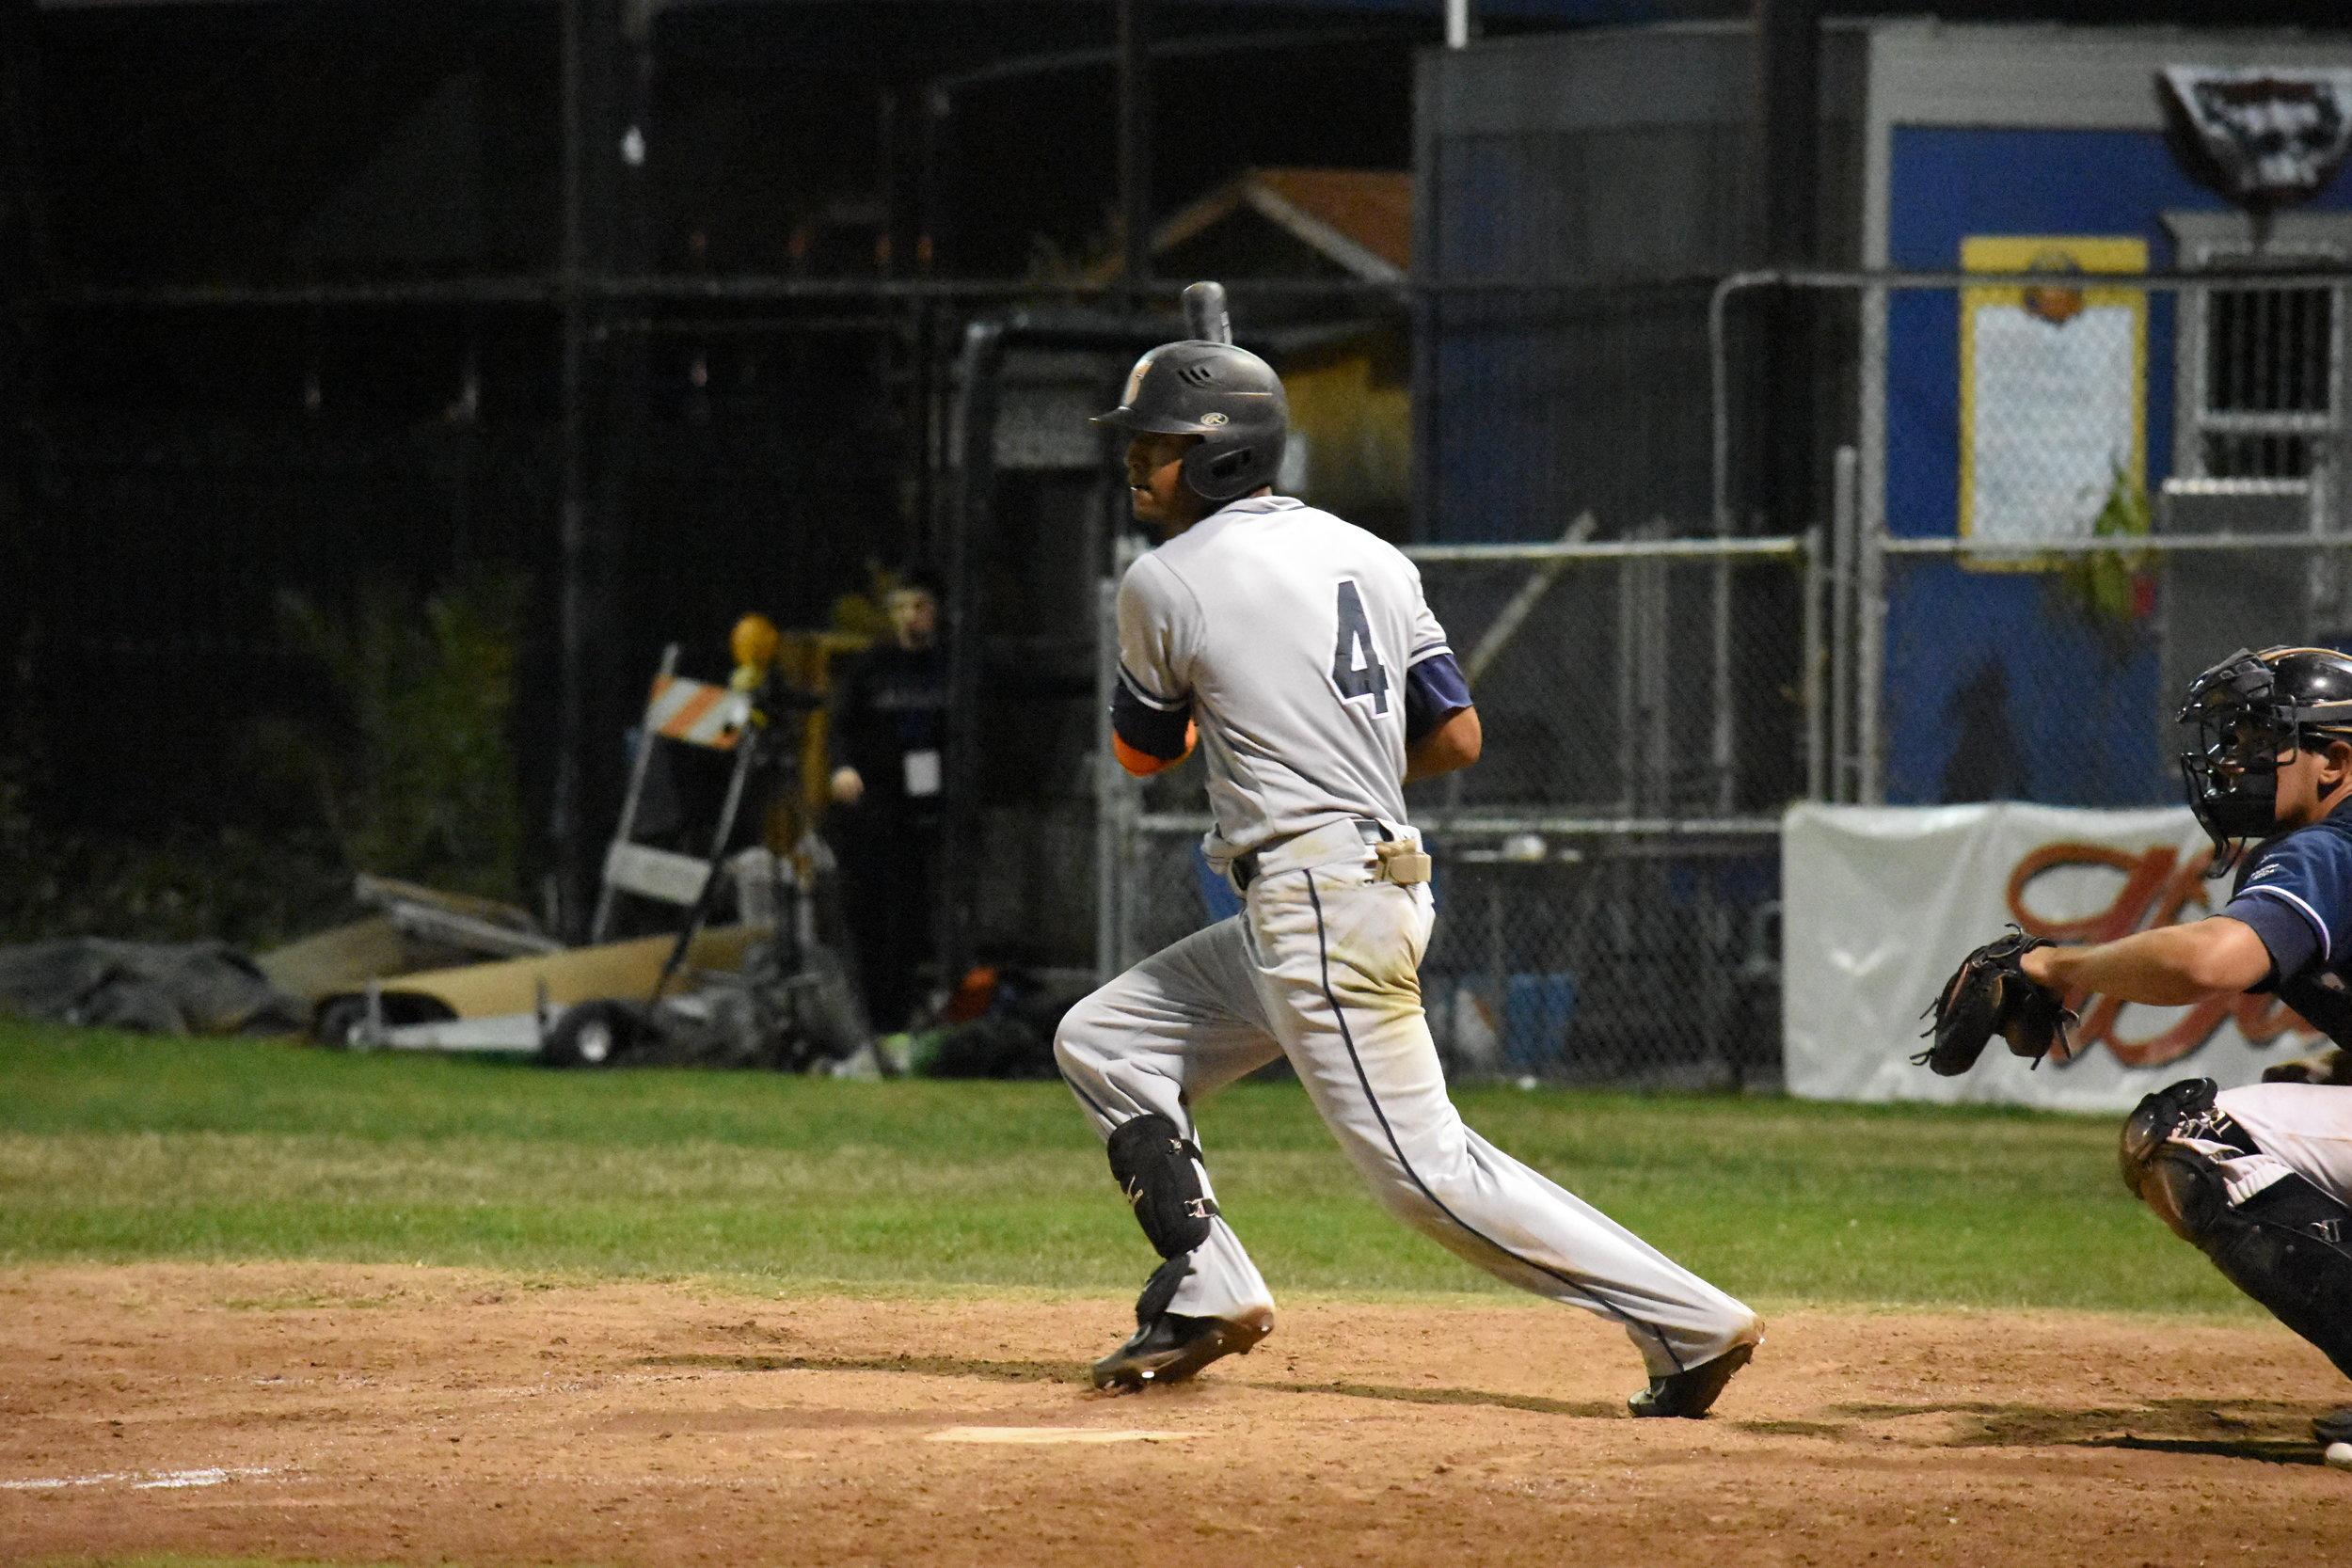 Marcus Bradley went 2 for 4 with two runs batted in, including the tying run in the ninth inning of Friday's 9-4 win over the San Rafael Pacifics at Albert Park (James W. Toy III / Sonoma Stompers)